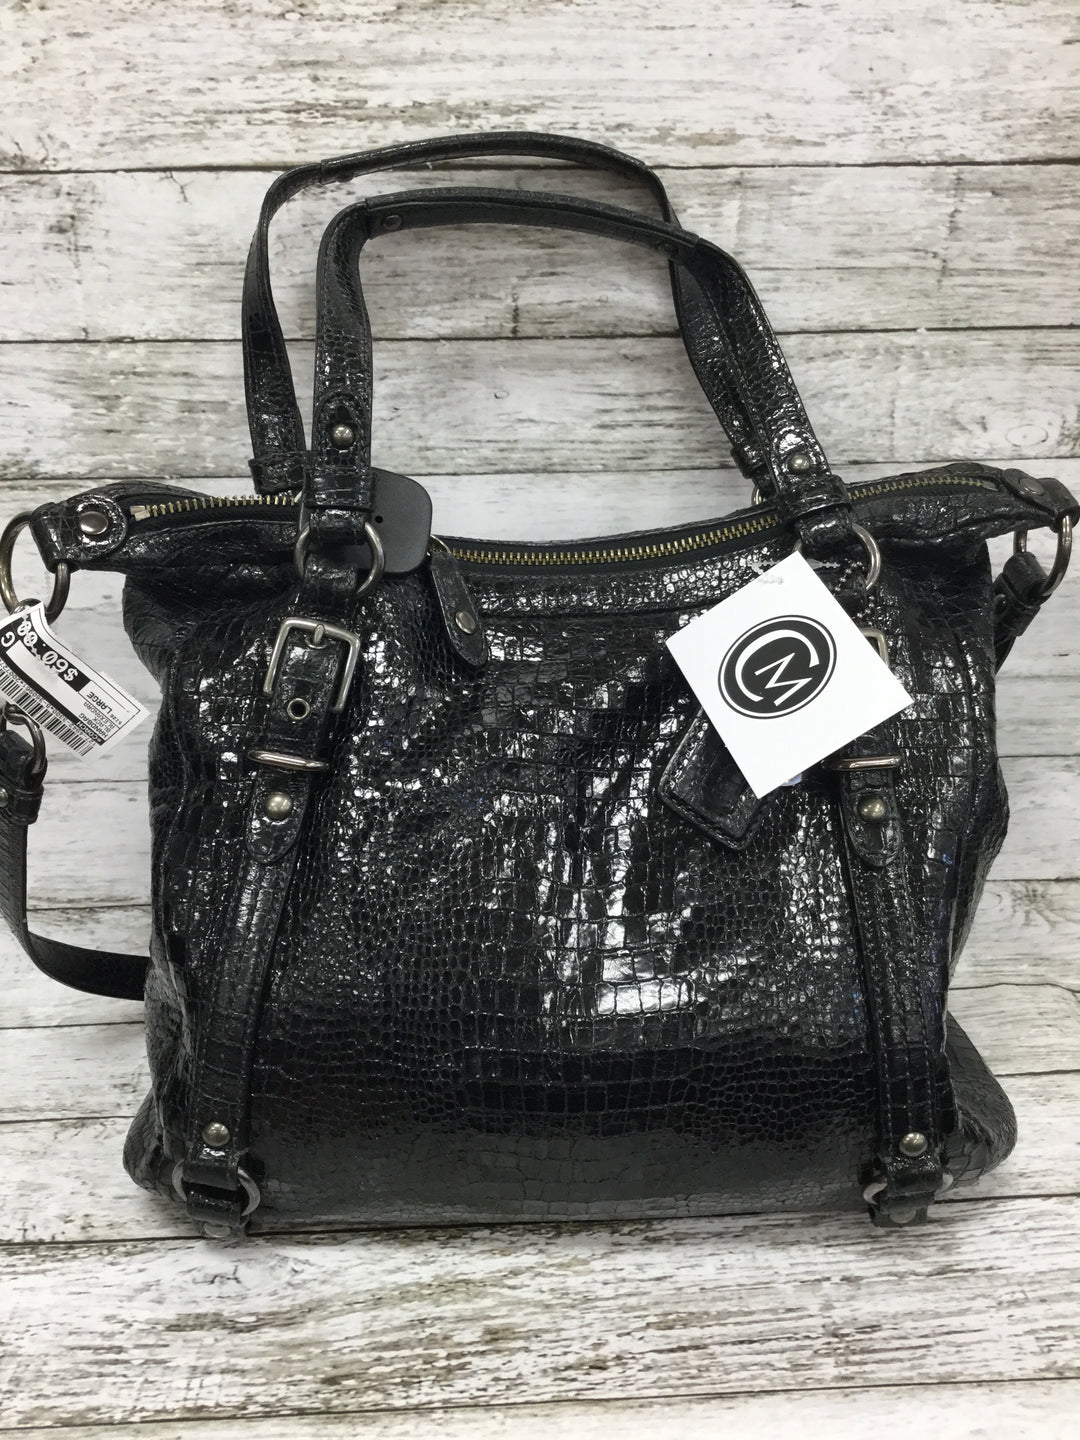 Photo #2 - BRAND: COACH , STYLE: HANDBAG , COLOR: BLACK , SIZE: LARGE , OTHER INFO: ALEXANDRA , SKU: 127-4942-3300, , THIS LEATHER COACH HANDBAG IS IN VERY GOOD CONDITION WITH SOME MINOR WEAR. THE INSIDE AND OUTSIDE ARE BOTH VERY CLEAN.